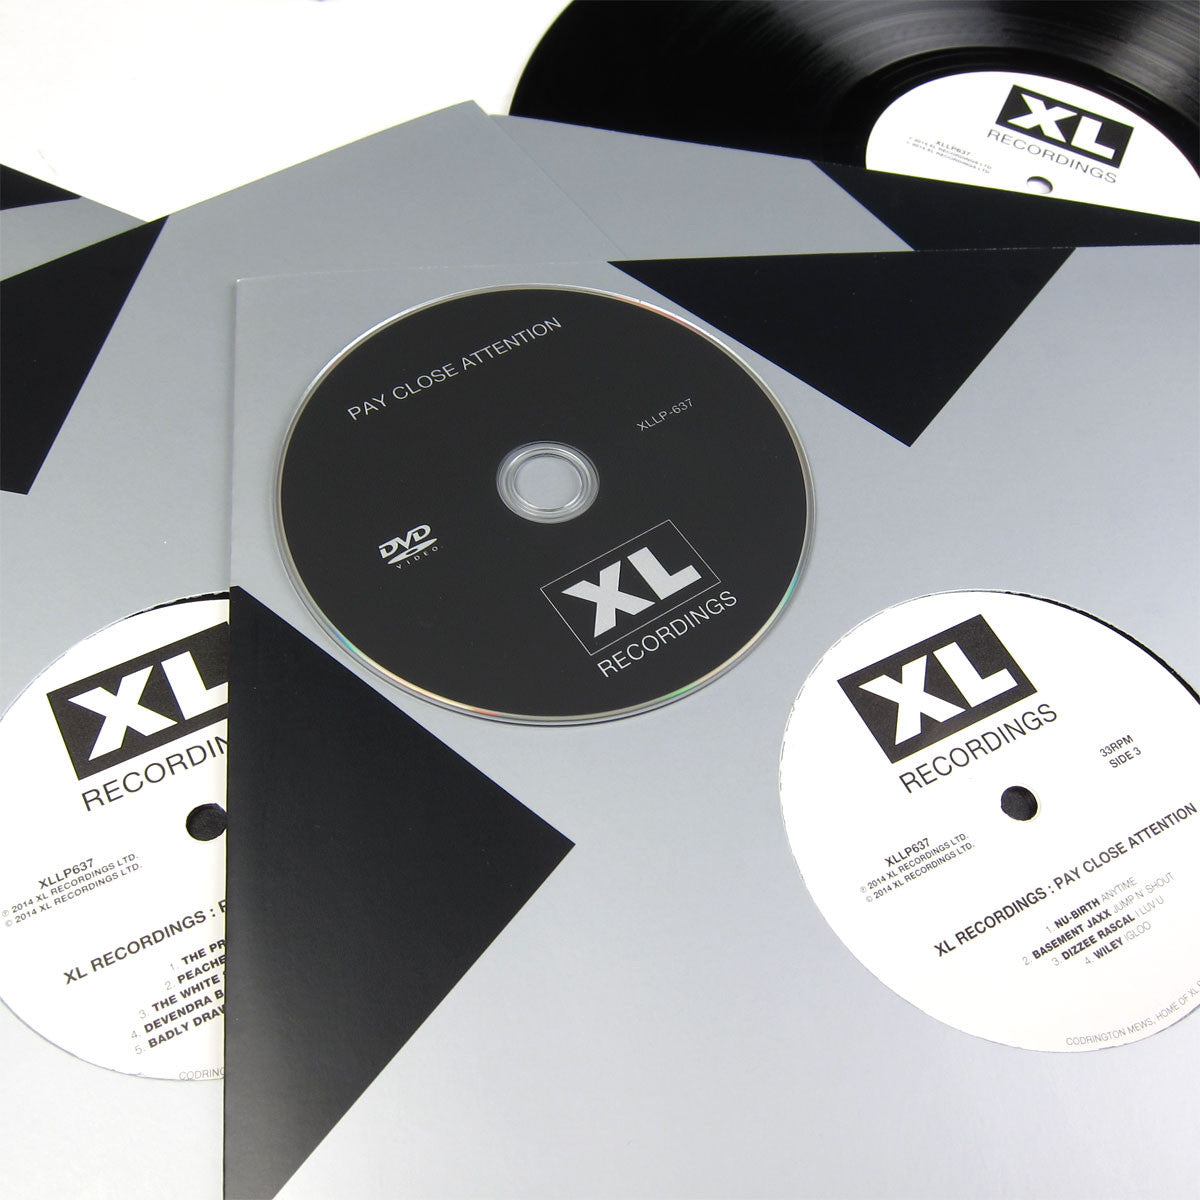 XL Recordings: Pay Close Attention Vinyl 4LP Boxset close up